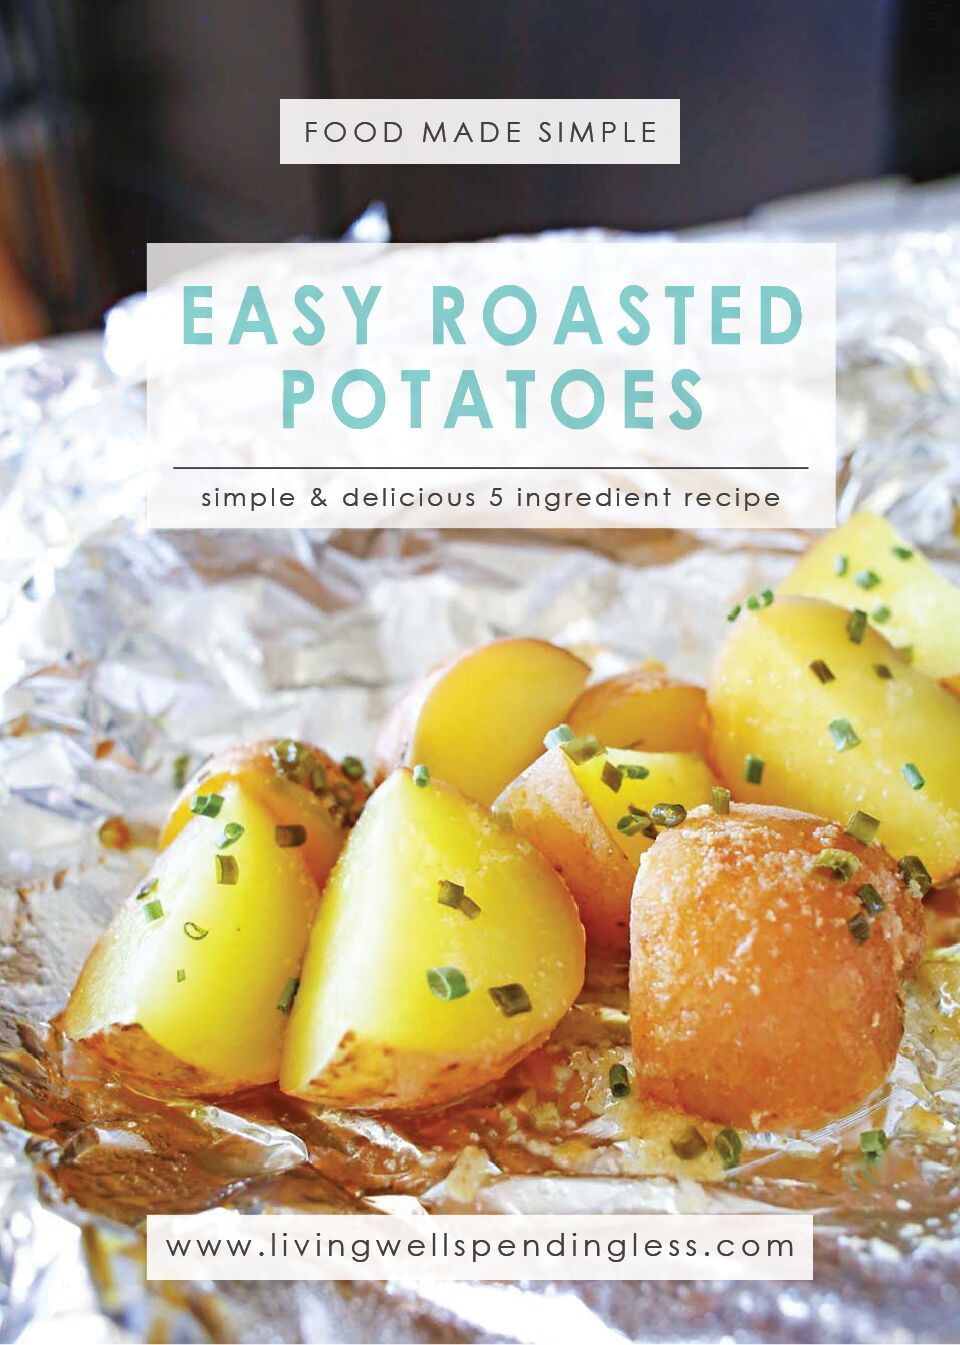 Recipe easy roasted potatoes easy roasted potatoes 5 ingredients or less food made simple meatless meals forumfinder Image collections